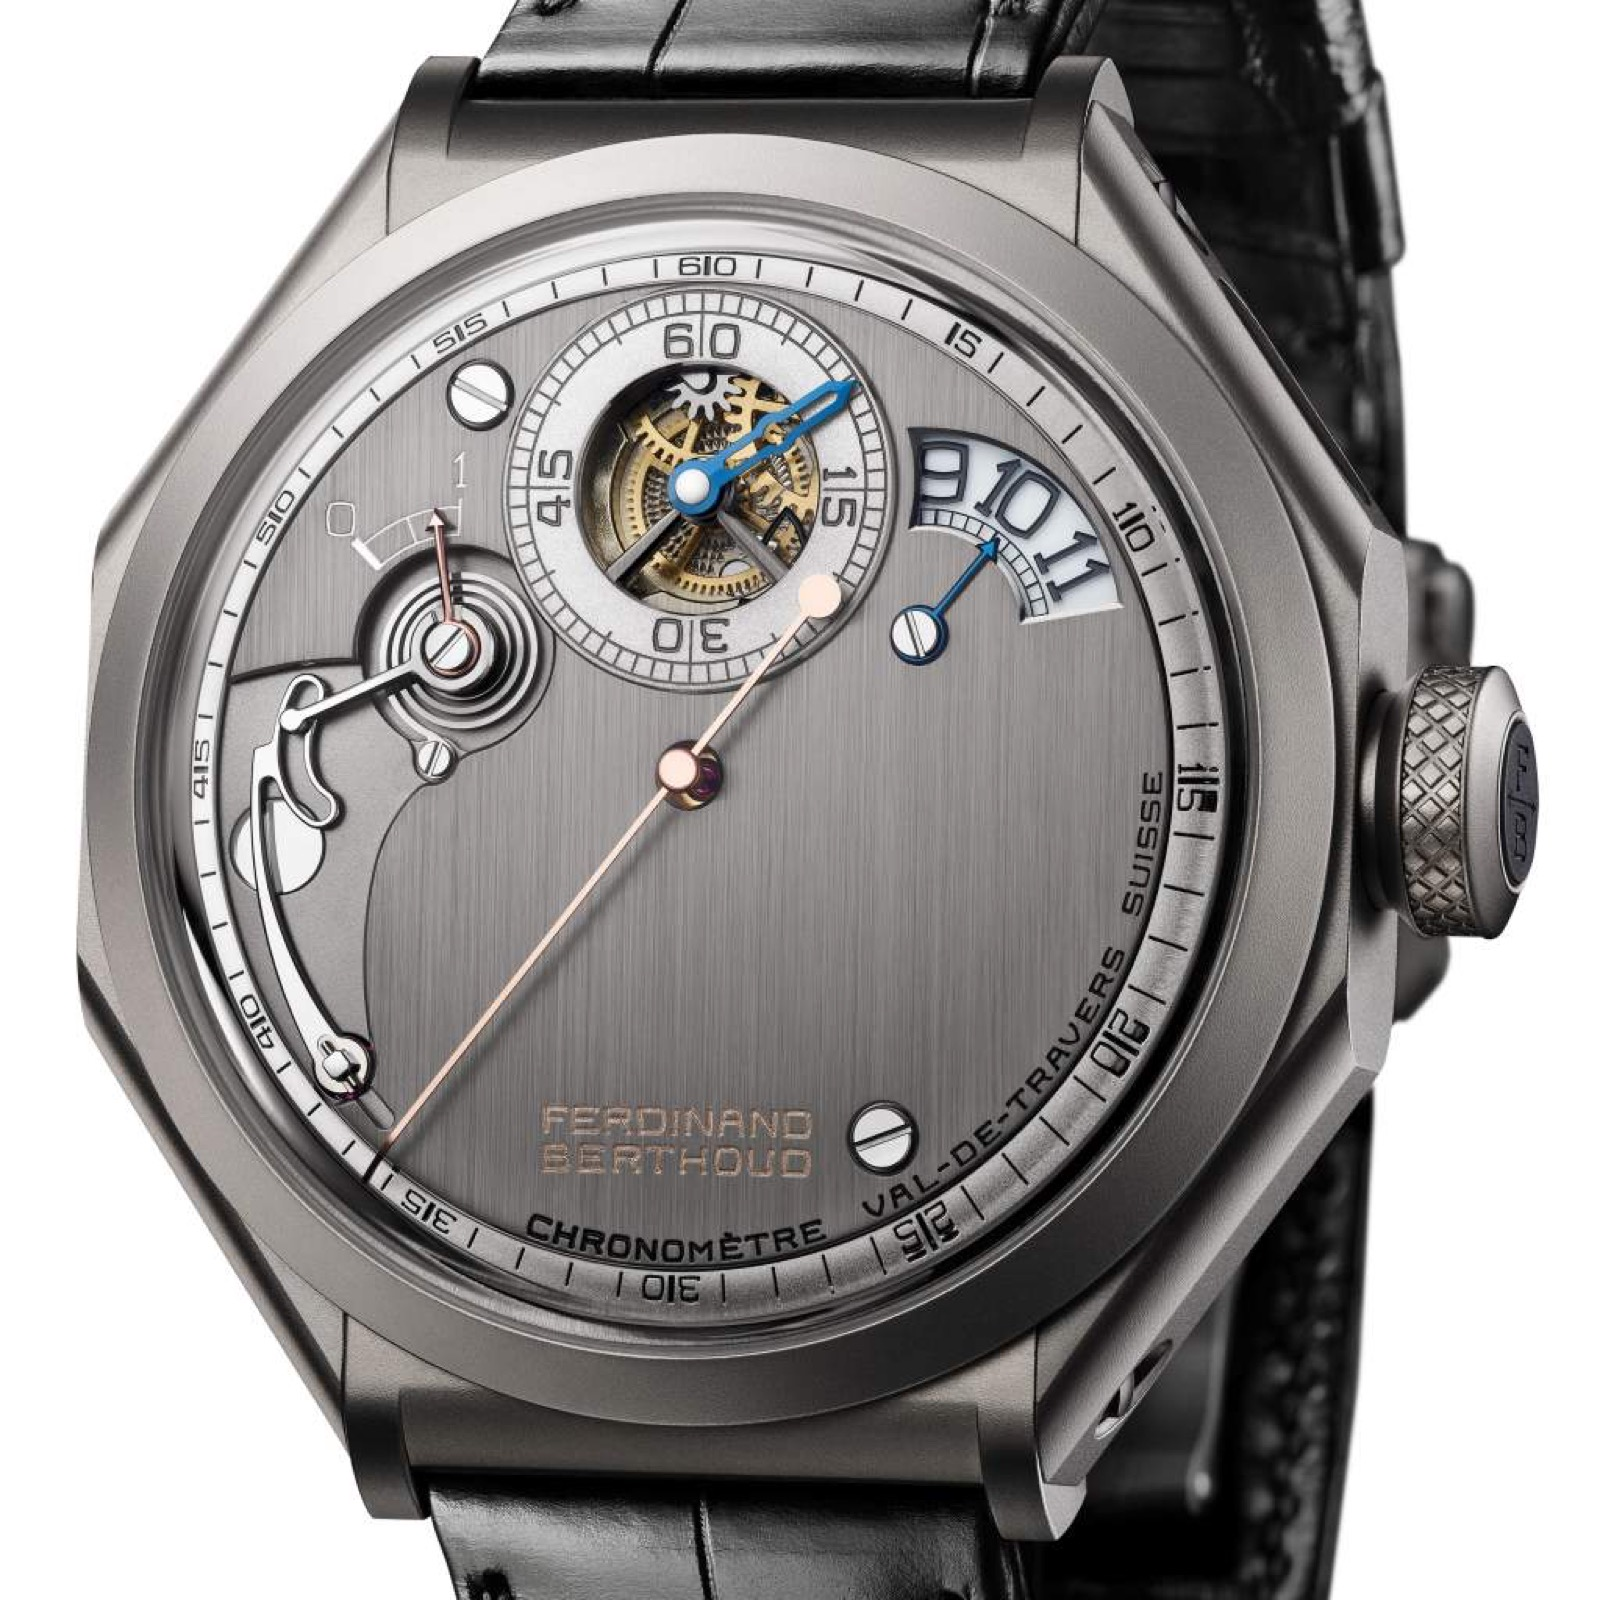 GPHG 2019 Chronométrie Ferdinand Berthoud Carburised steel regulator